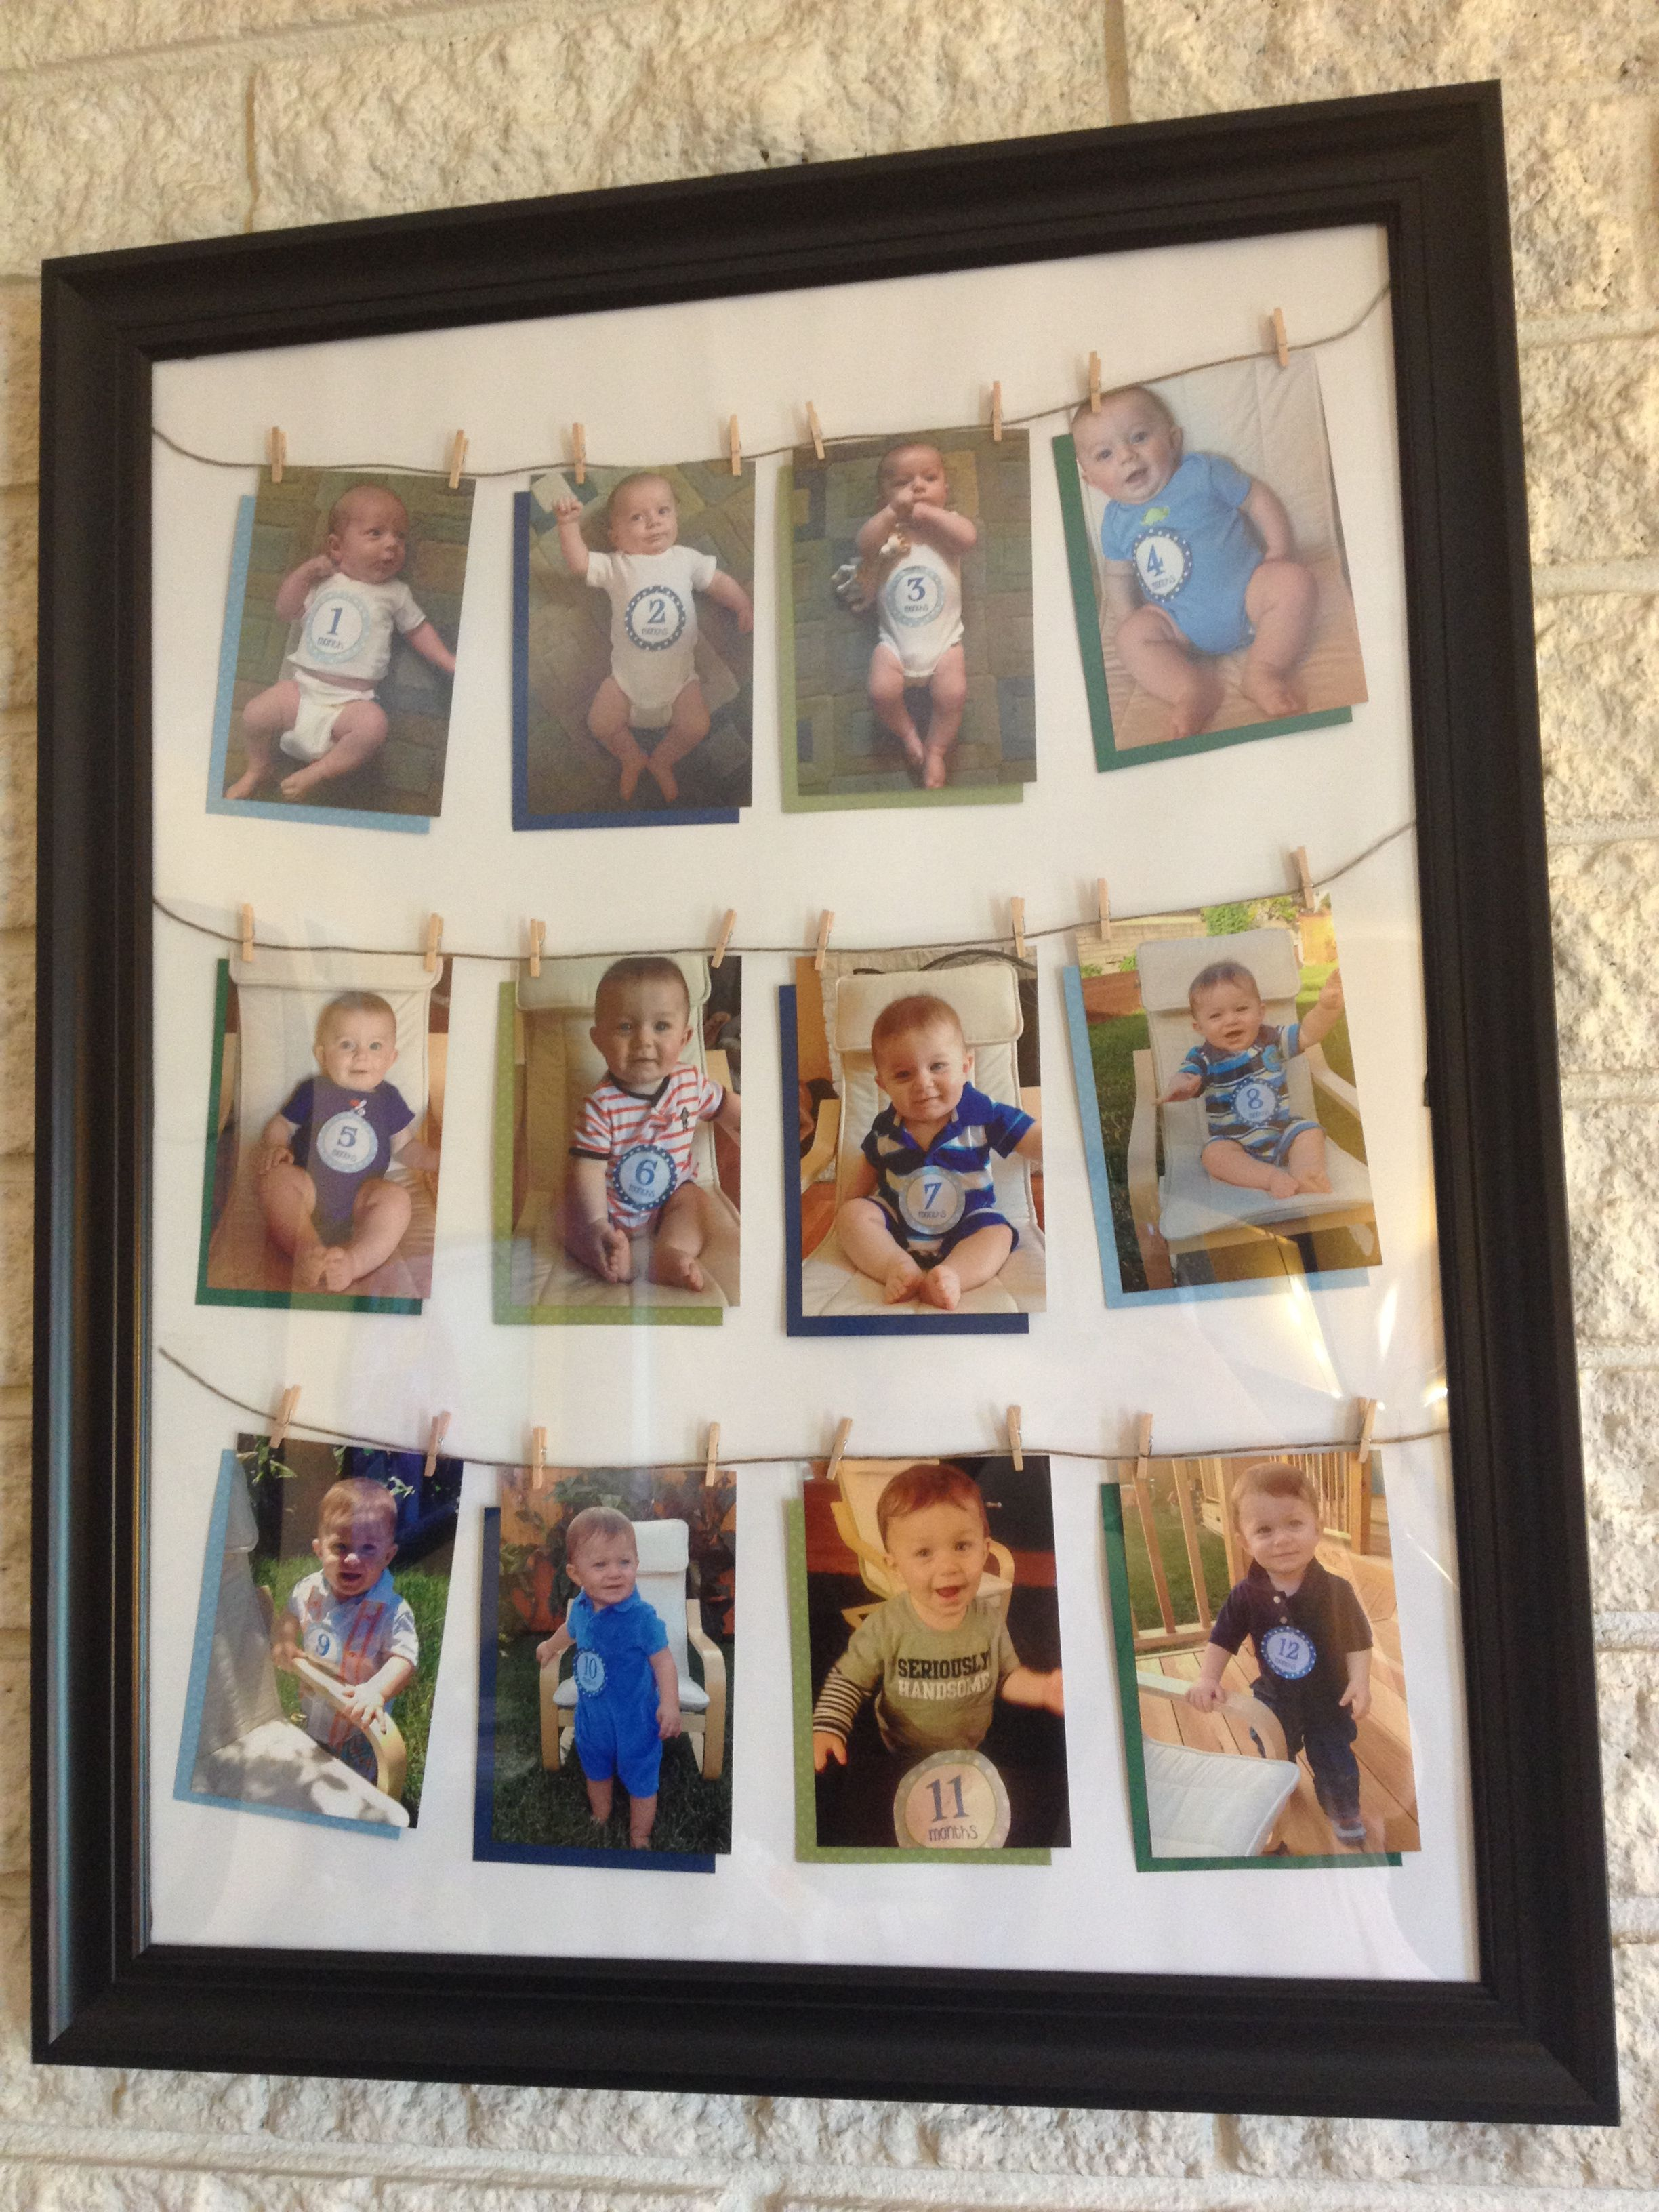 Pin By Brittany Stamper On Kids Monthly Baby Photos Display Birthday Photo Displays Birthday Picture Displays